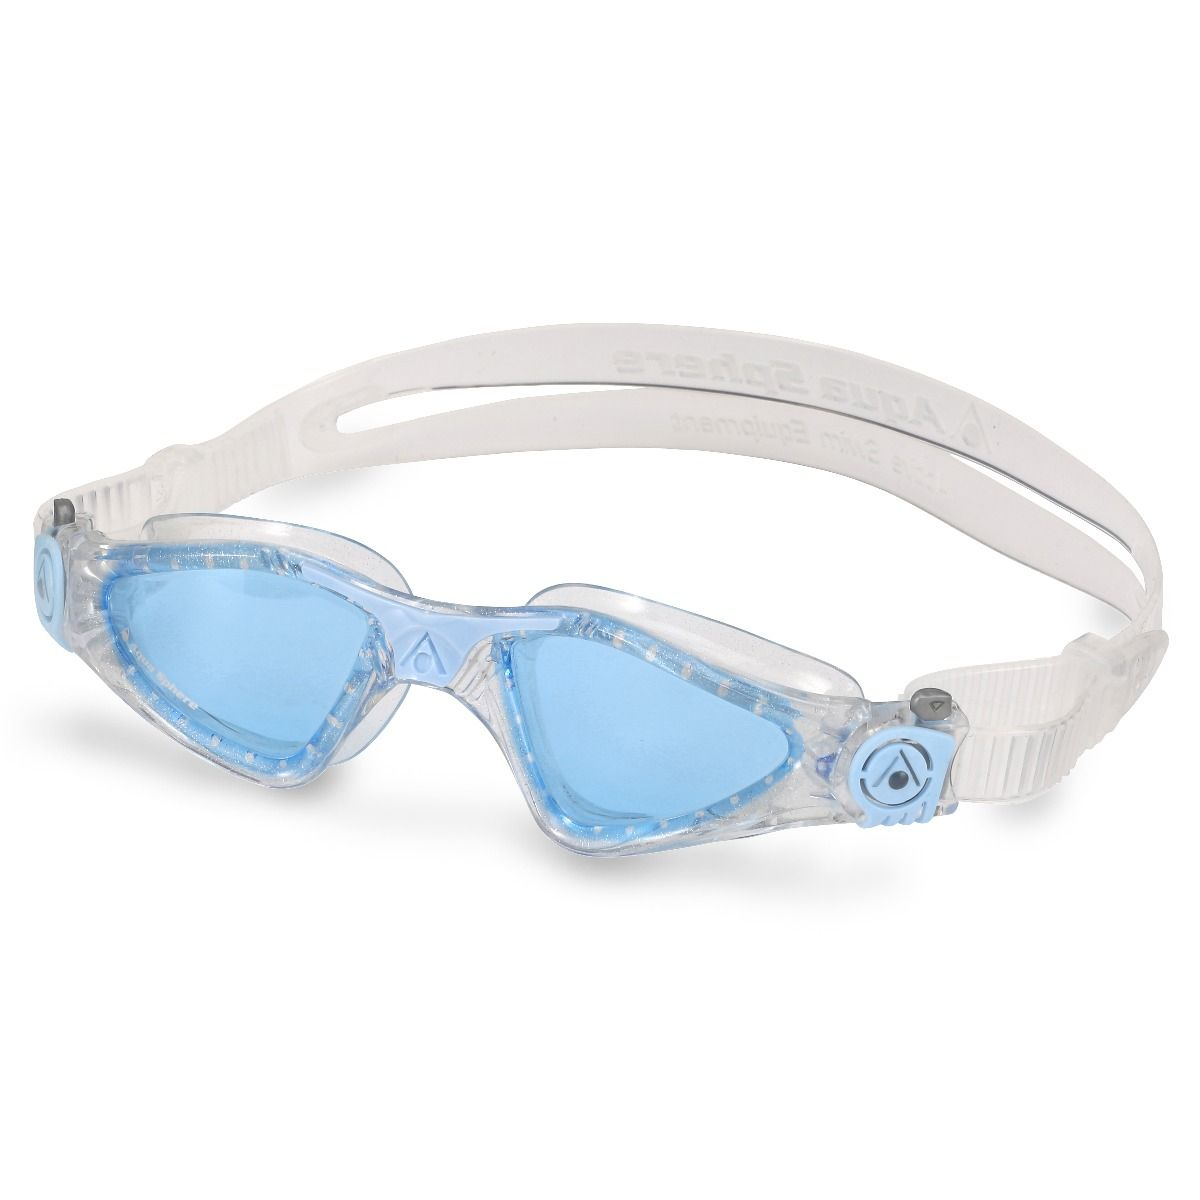 ef932892a9a Tap to expand · Aqua Sphere Kayenne Blue Lens Womens Swimming Goggles